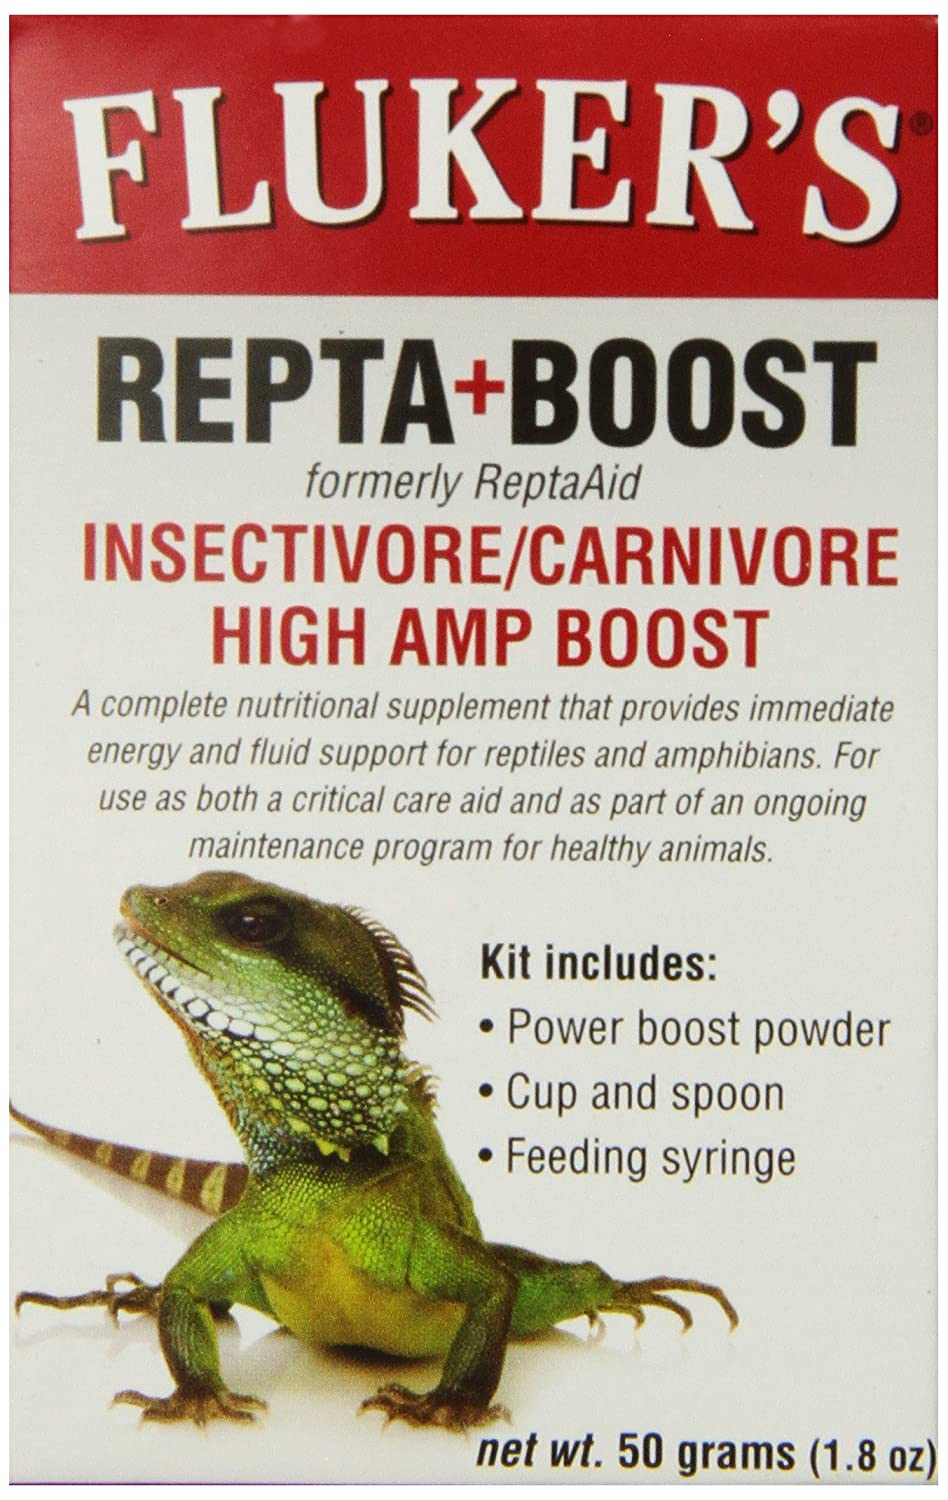 Fluker Labs SFK73030 Insectivore/Carnivore High AMP Boost Reptile Supplement, 50gm TopDawg Pet Supply 919041